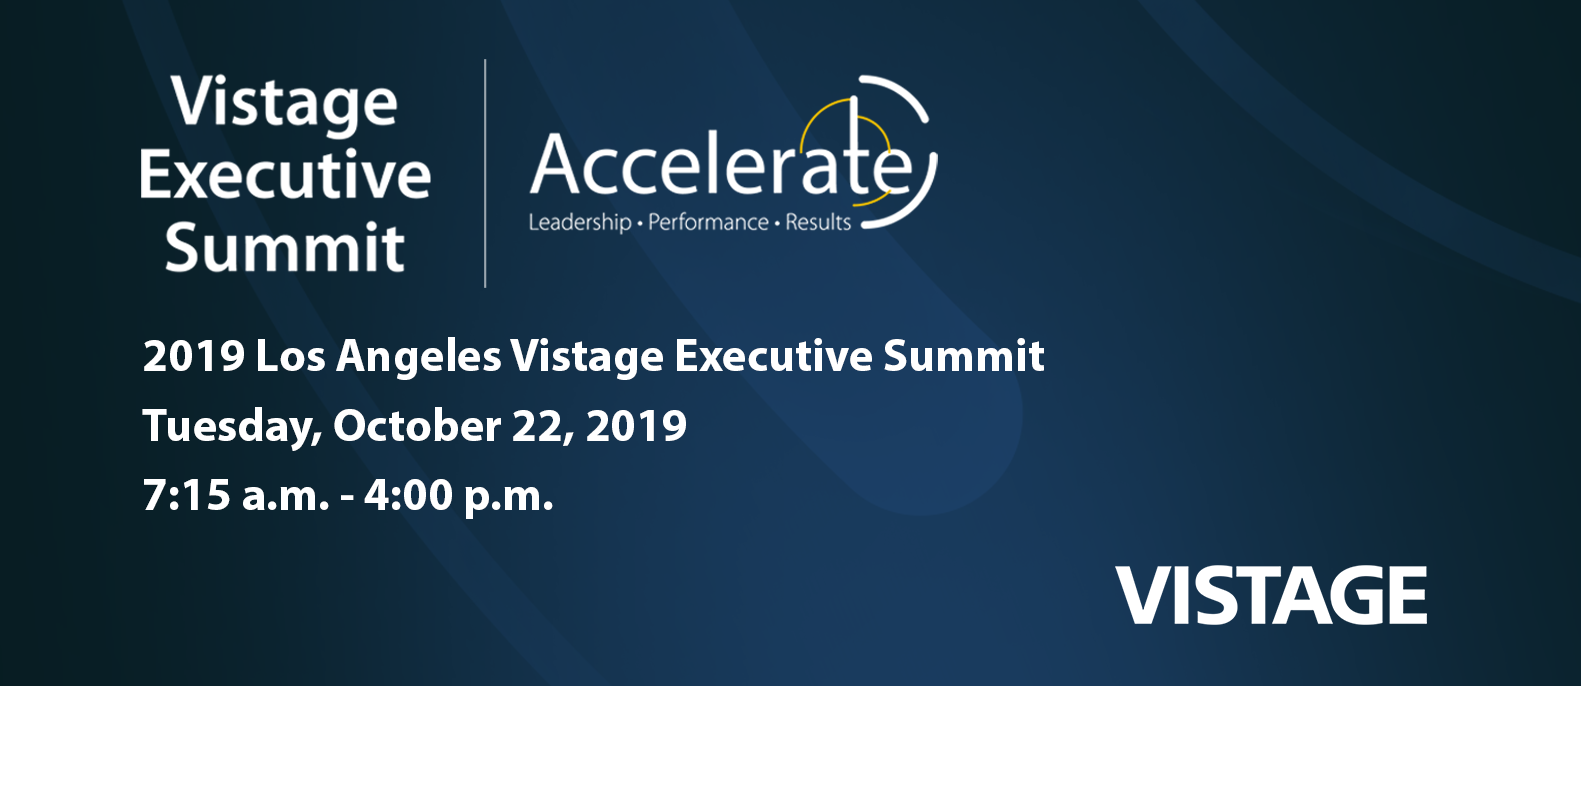 Los Angeles Vistage Executive Summit